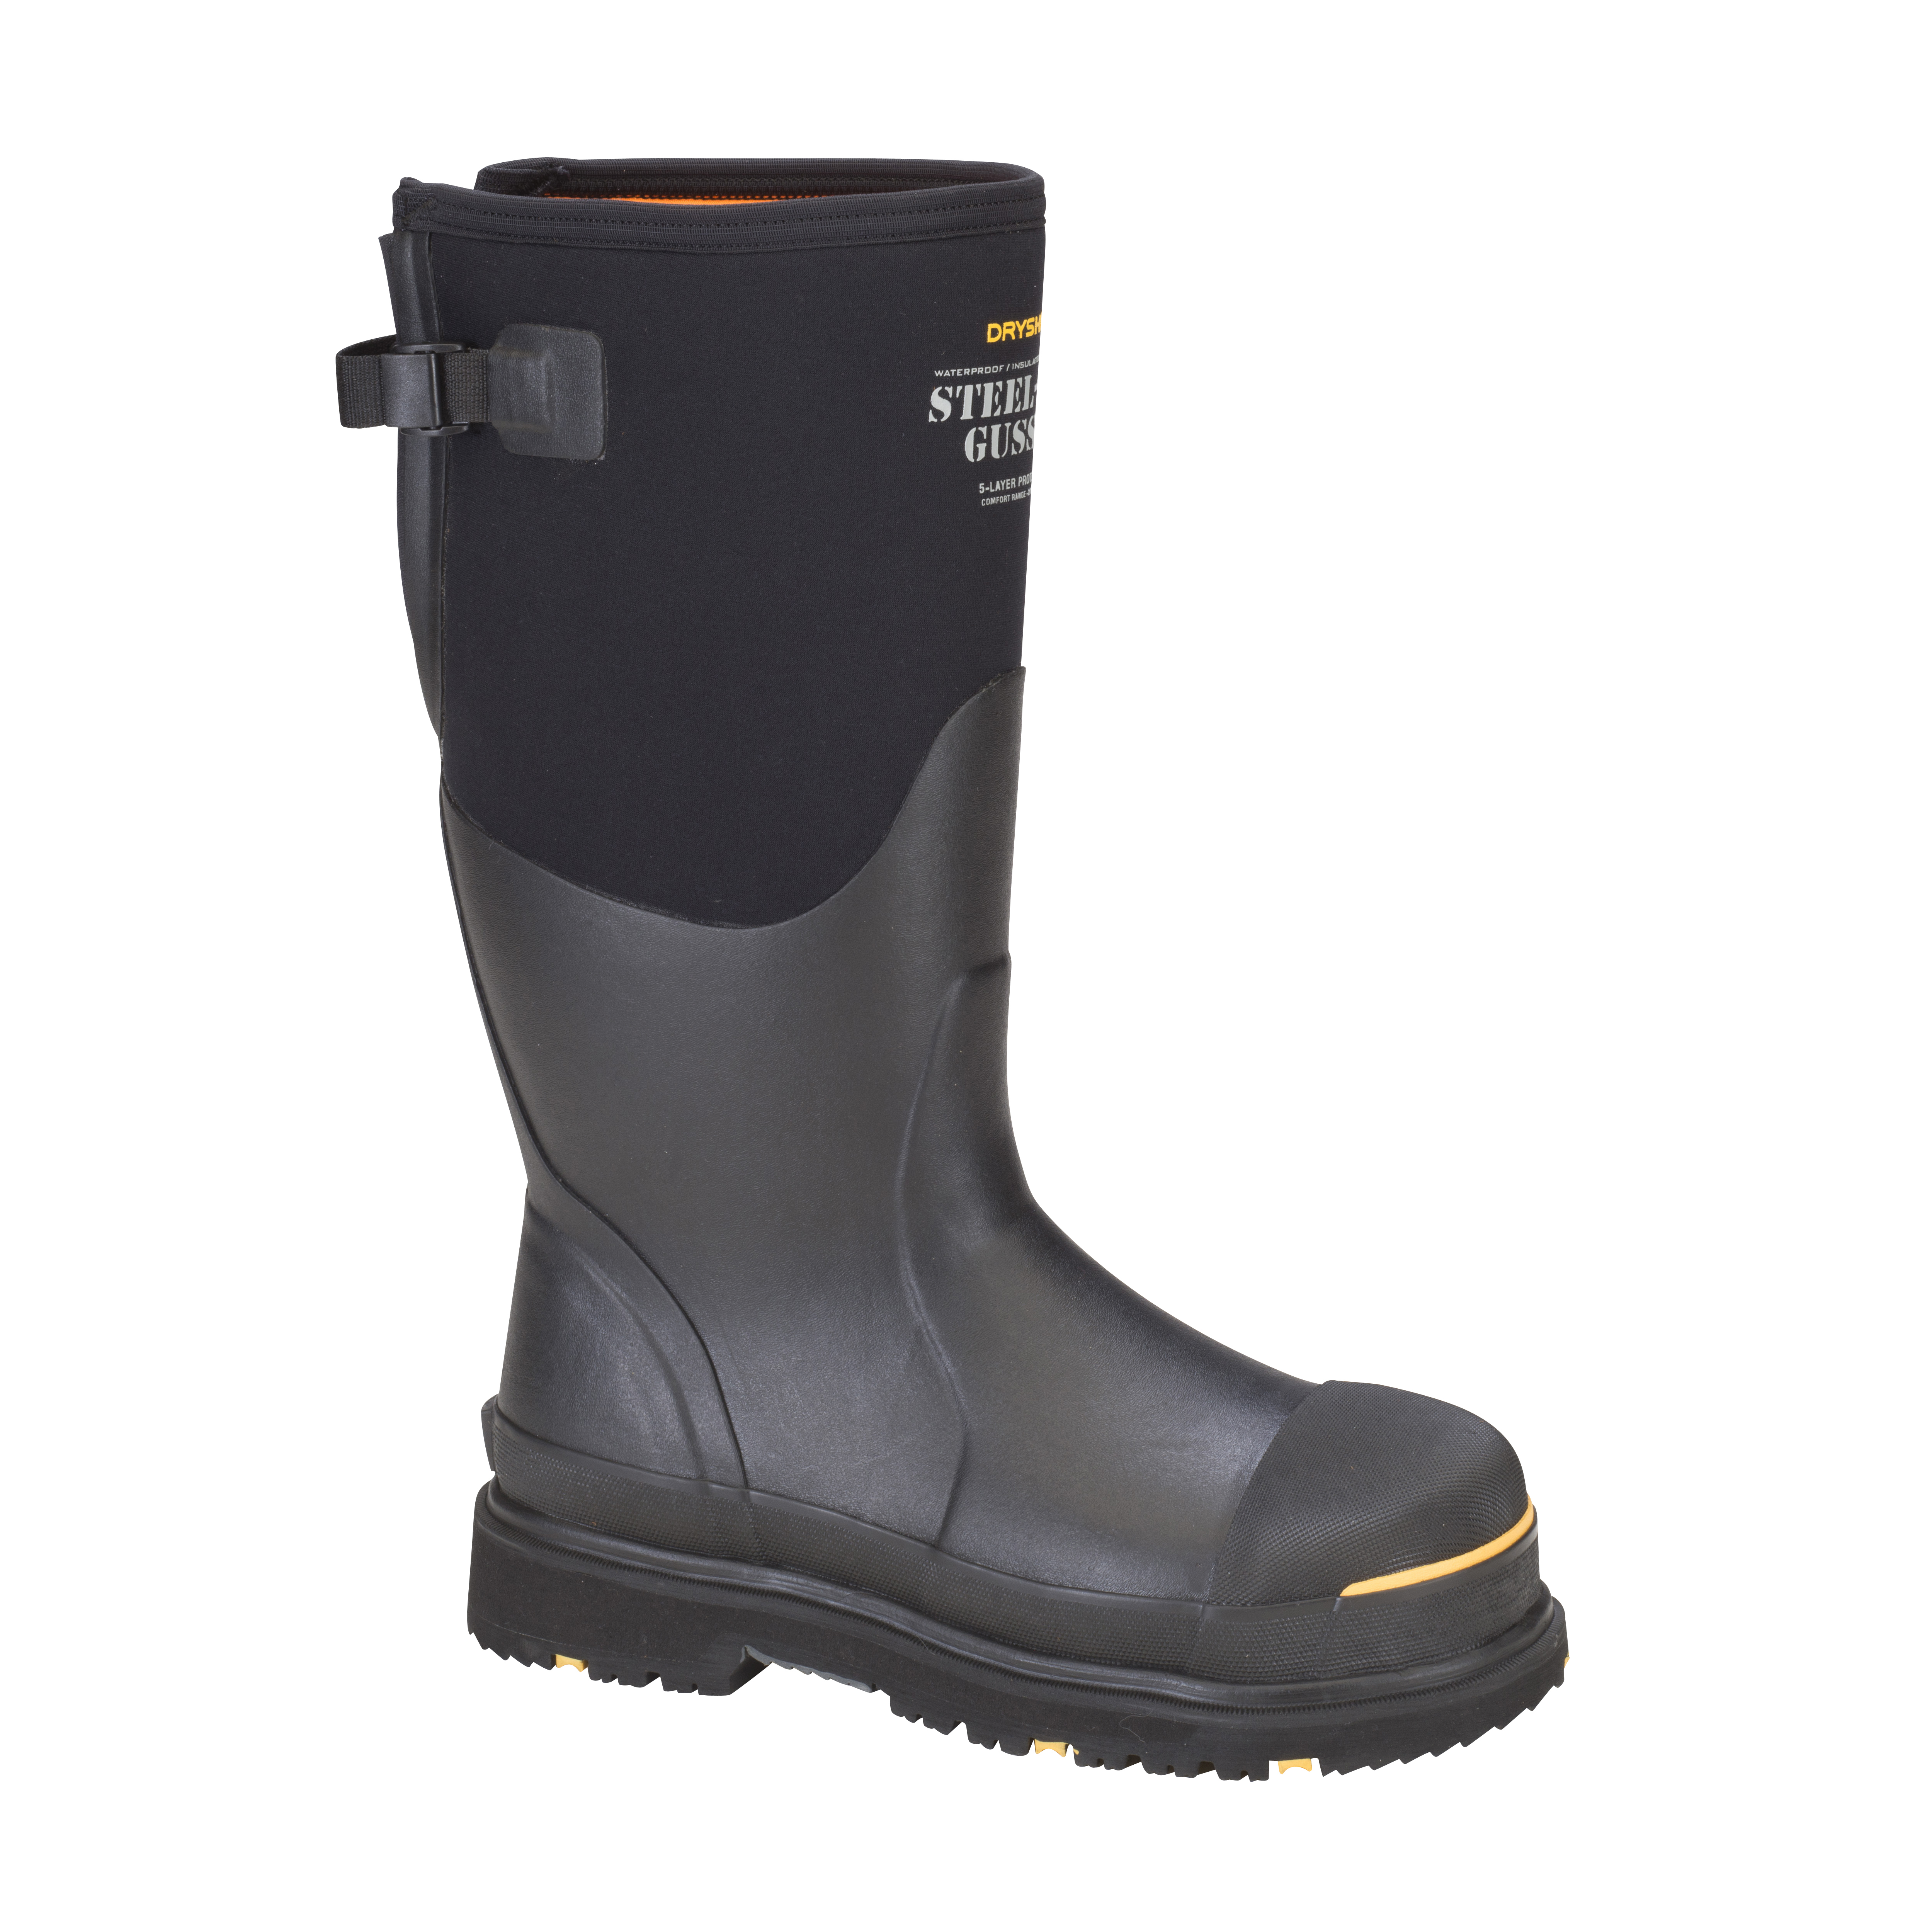 Steel-Toe Adjustable Gusset Work Boot #STG-UH-BK